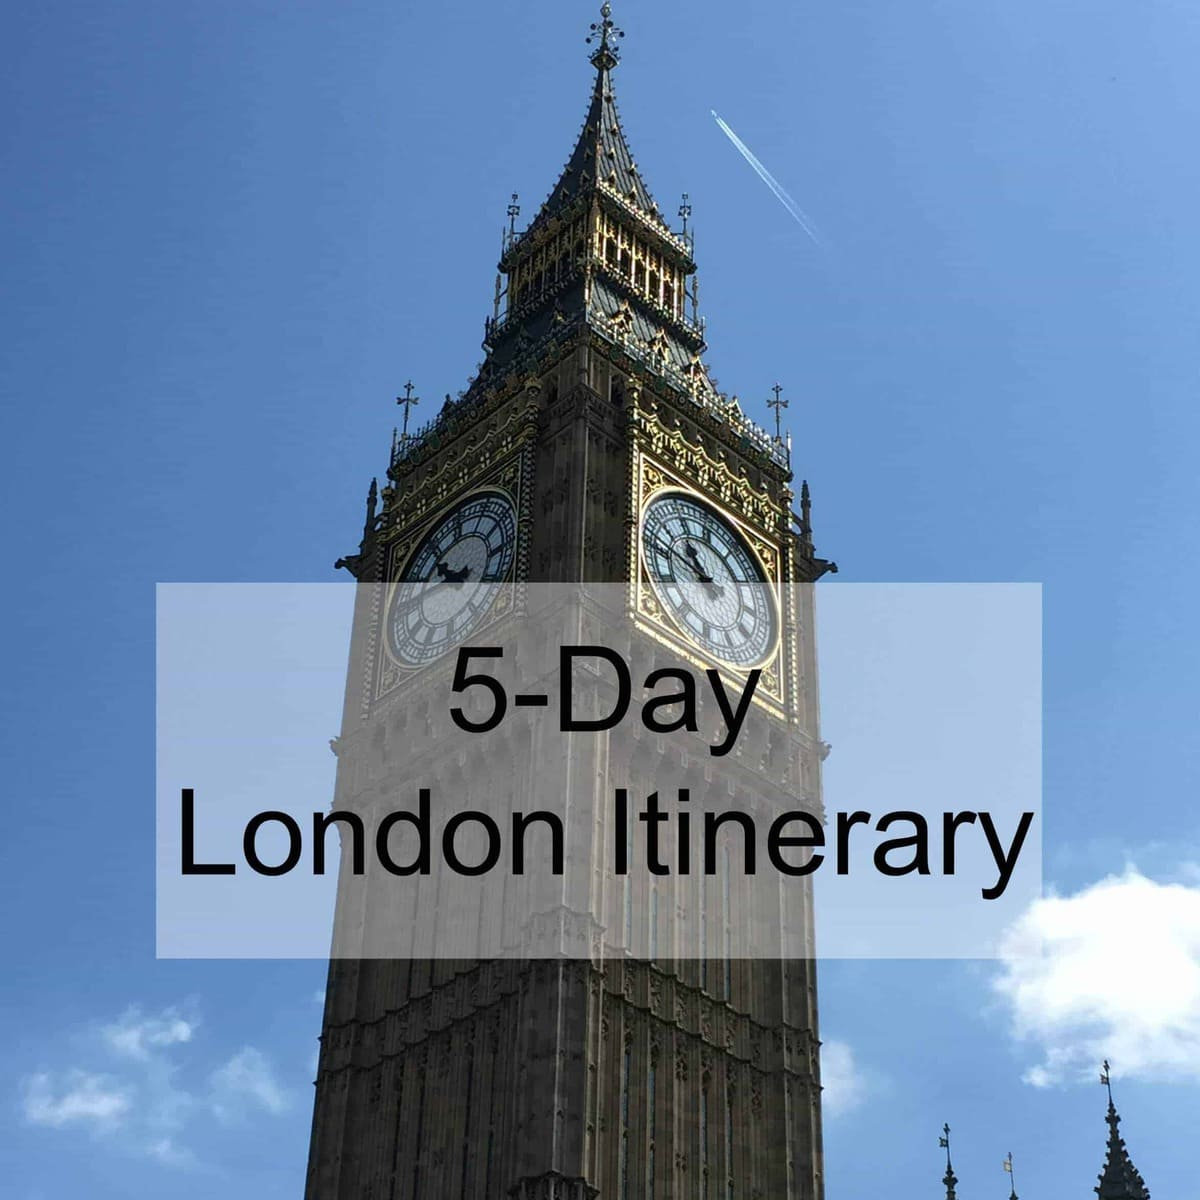 London Itinerary in Five Days